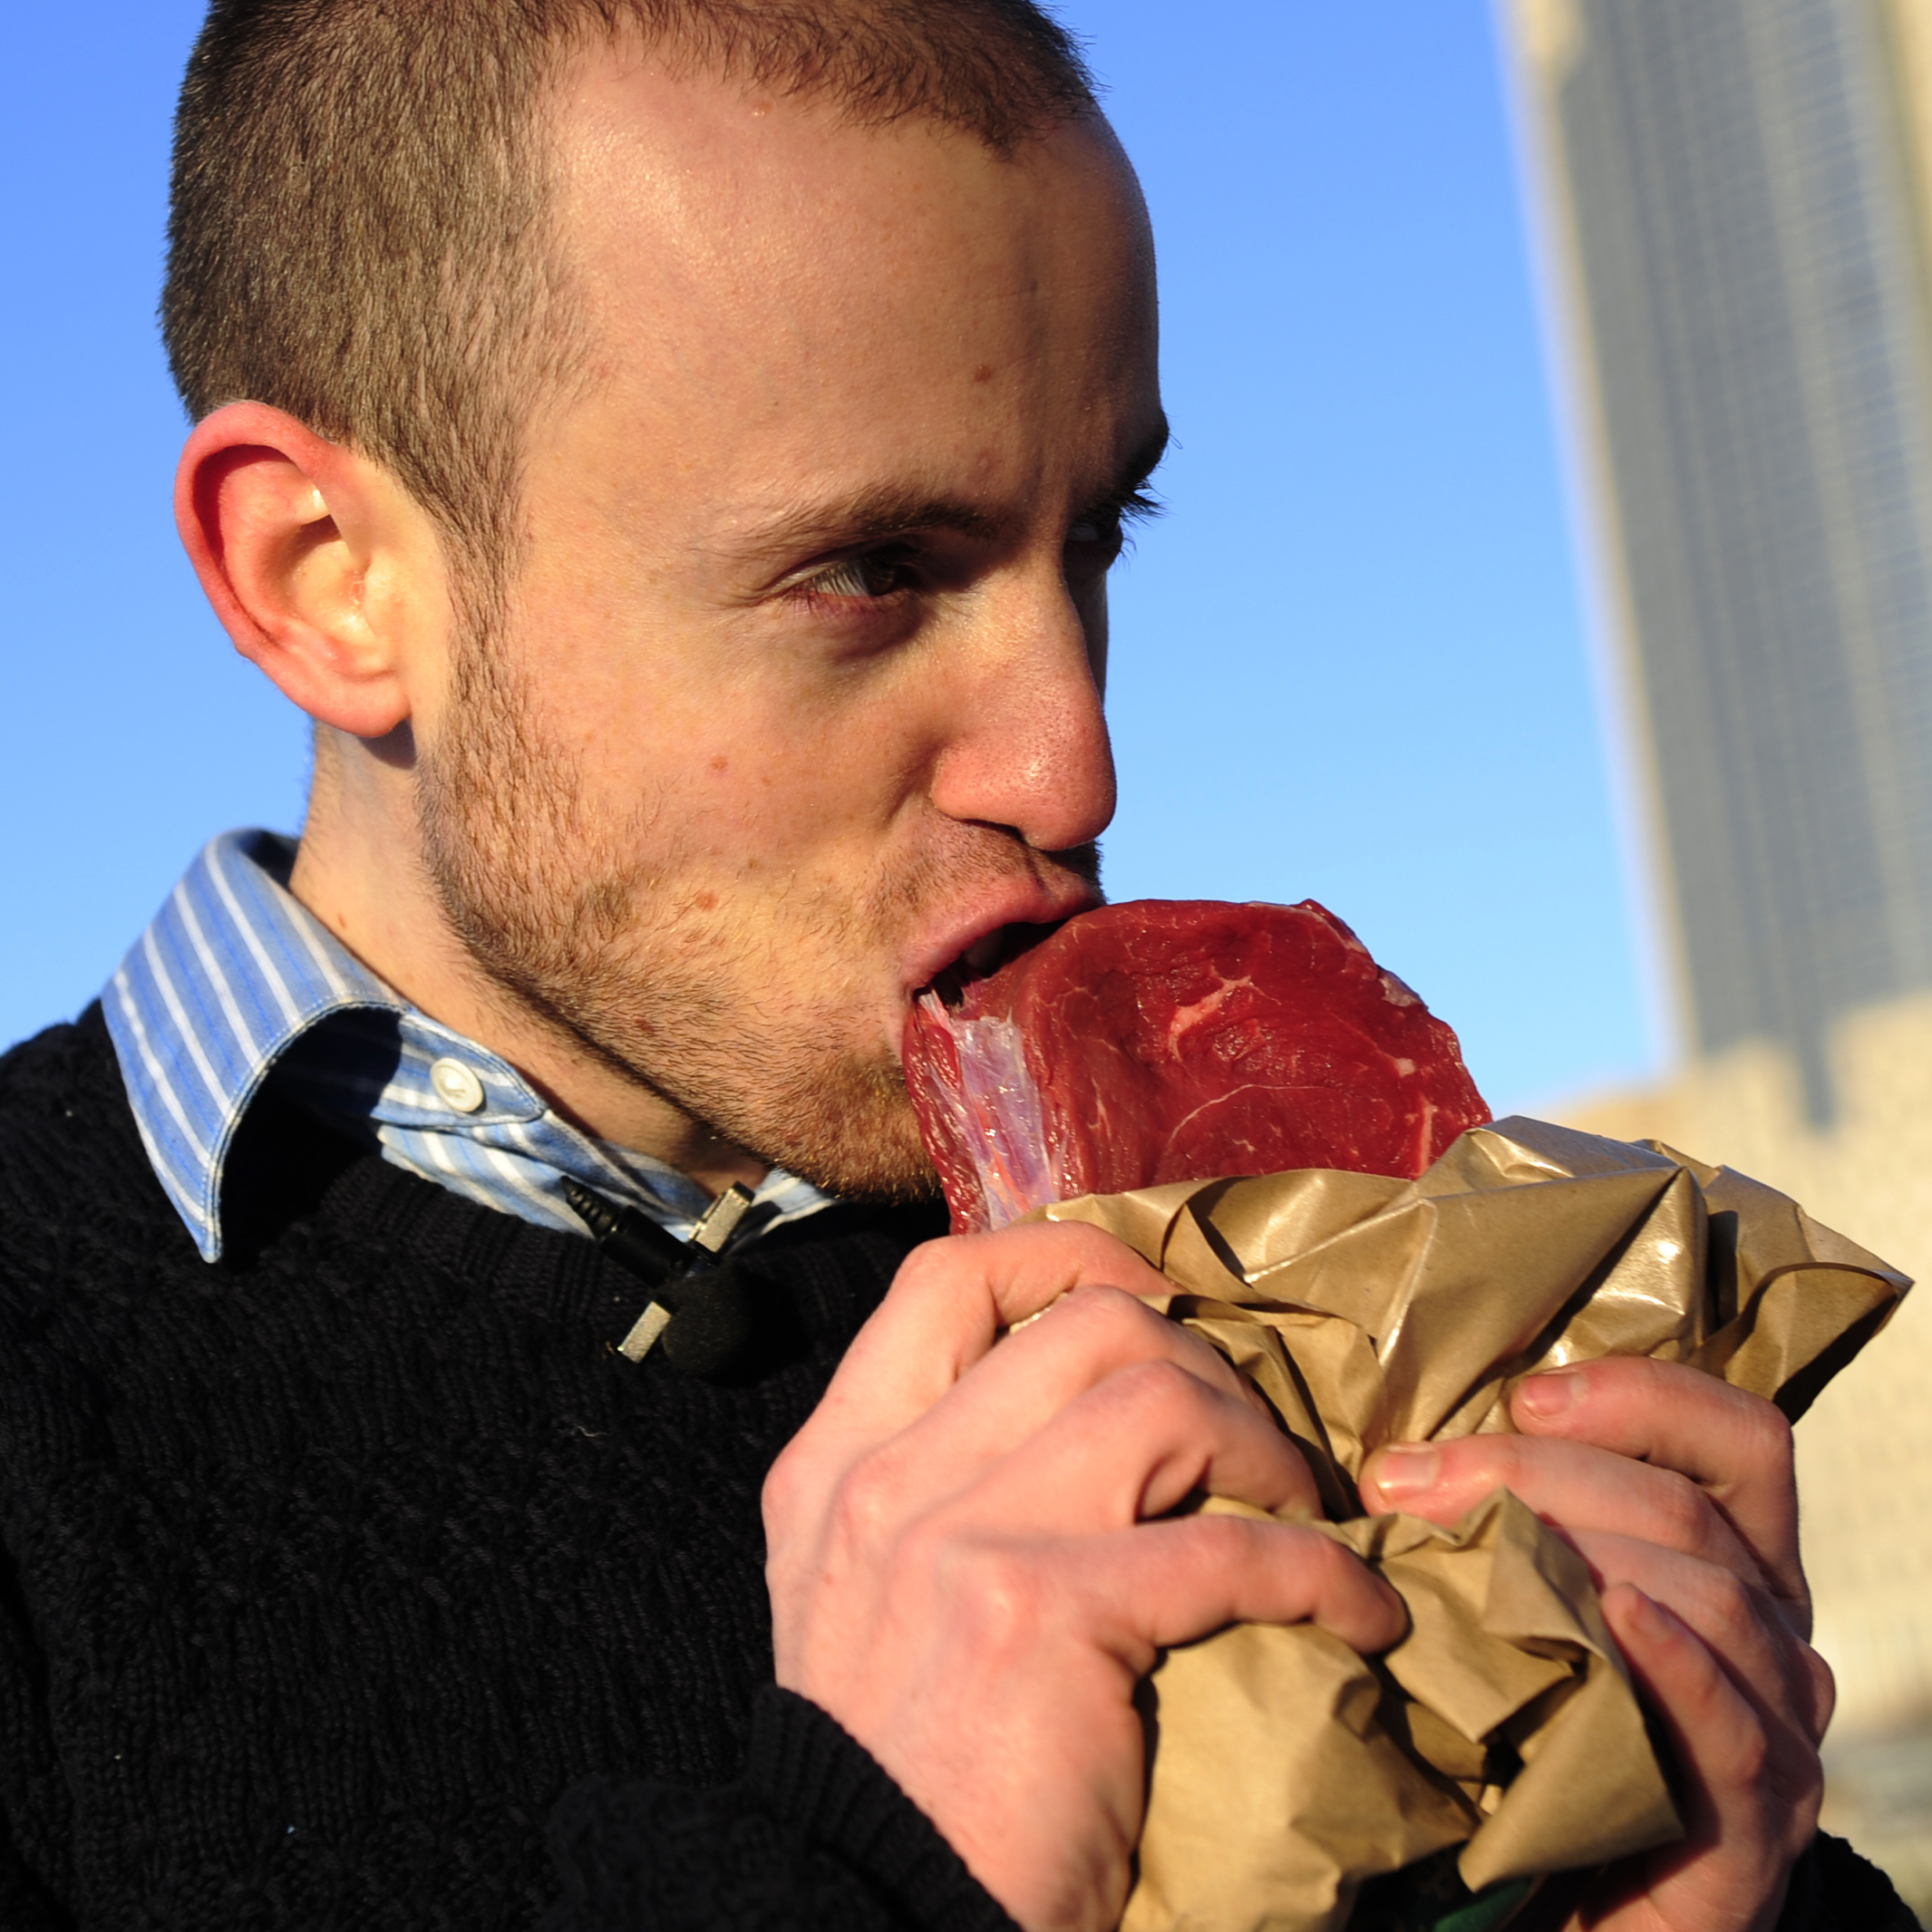 Vlad Averbukh, 29, a follower of the paleo diet, eats raw meat along the Hudson River in New York, February 04, 2010.